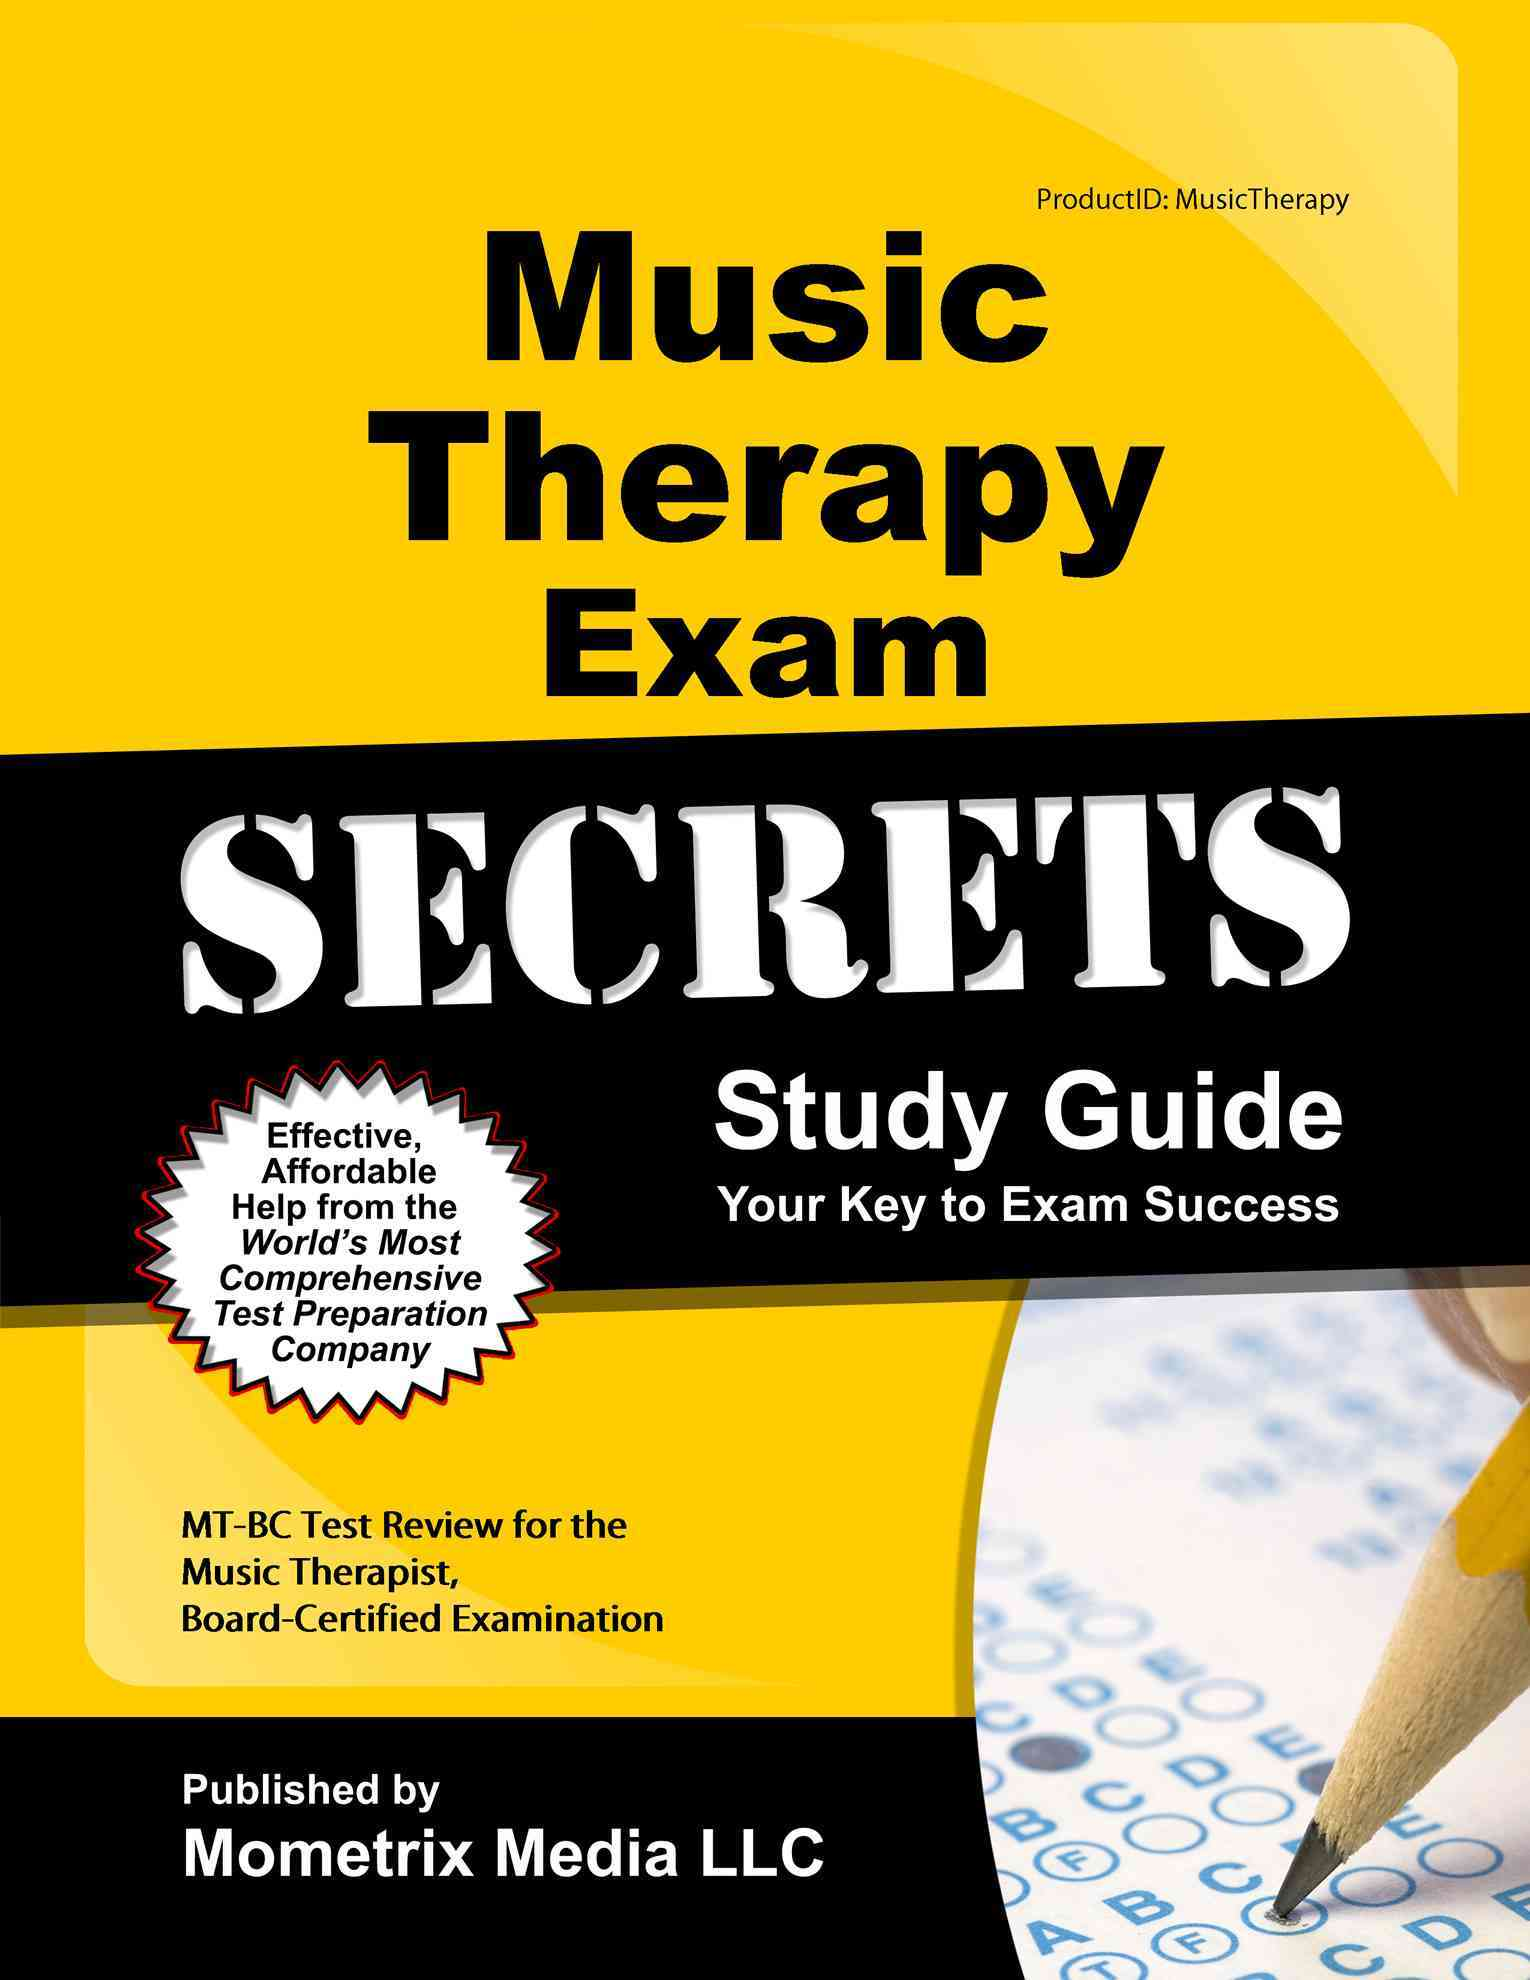 Music Therapy Exam Secrets Study Guide By Mt-bc Exam Secrets (EDT)